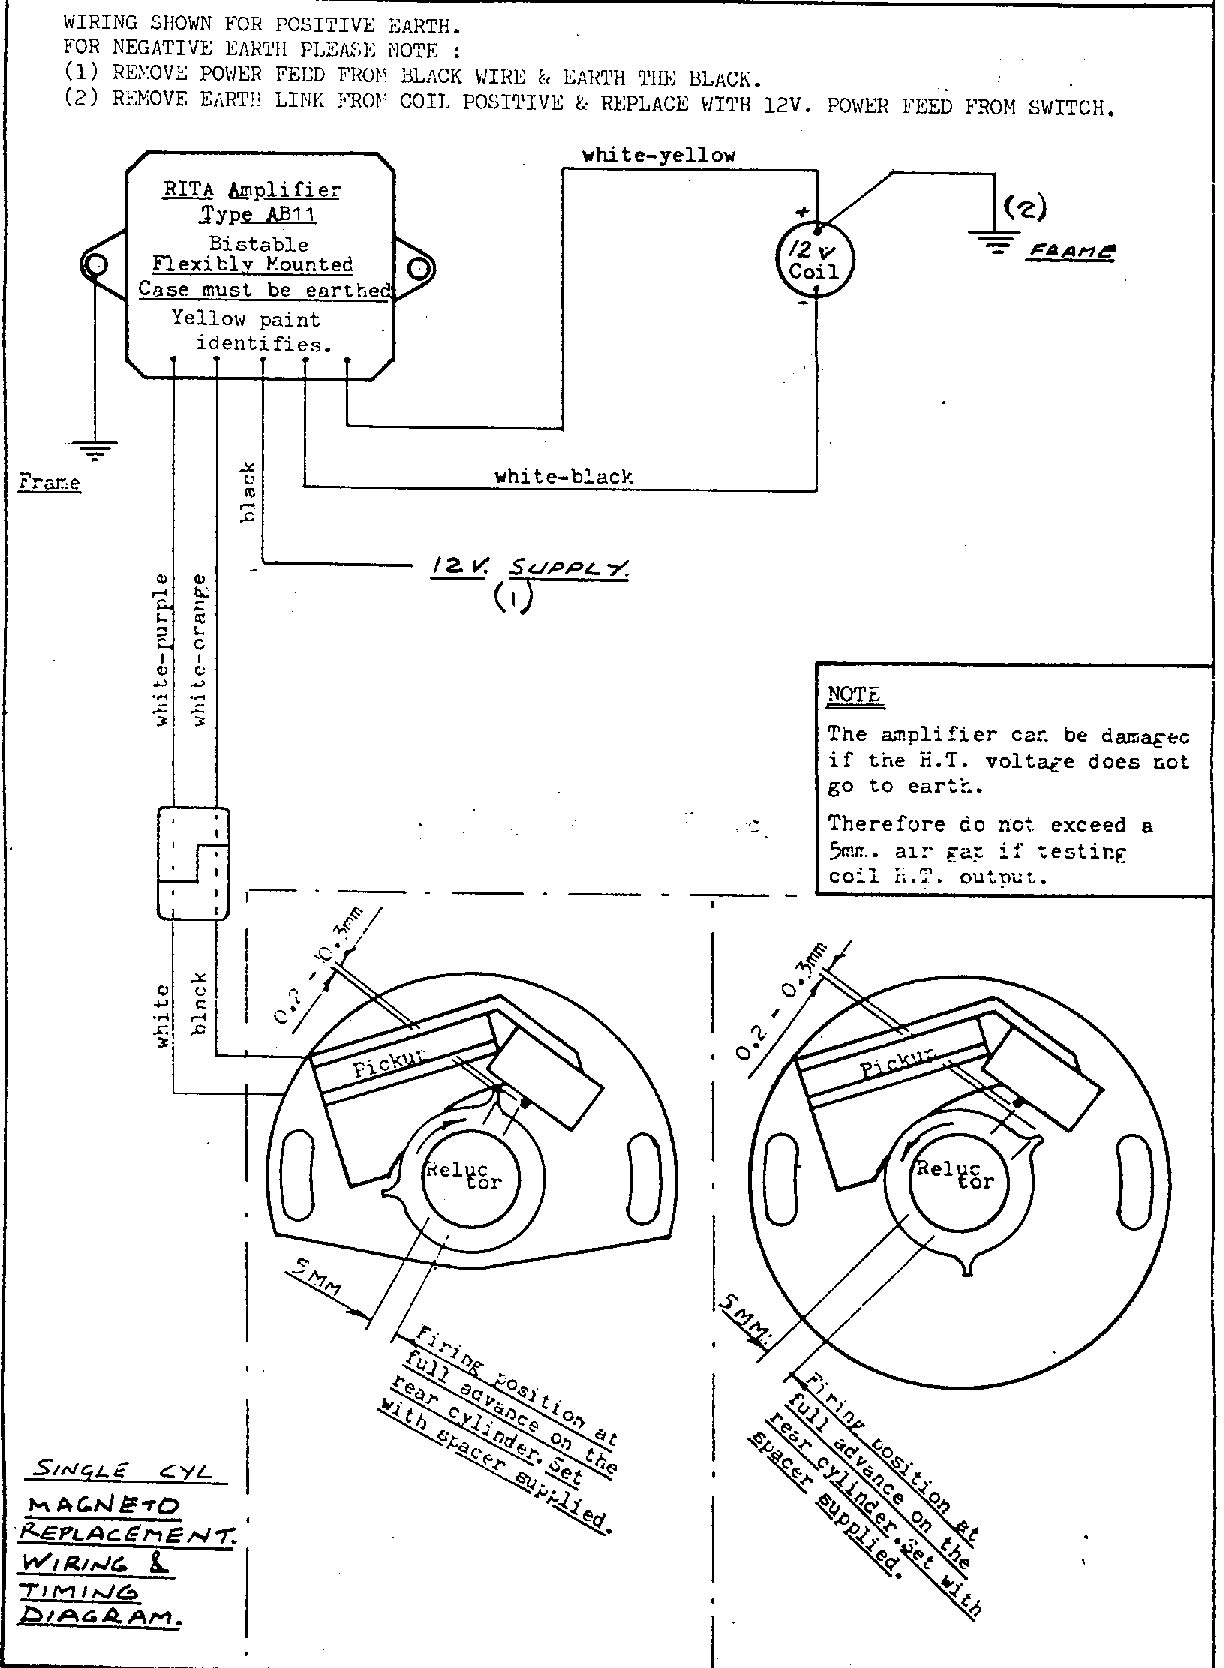 Moto Guzzi Wiring Diagram Page 3 And Schematics Cf E Charm 150cc For Installing The Lr134 Rita Ignition Magneto Replacement Single Parallel Twin